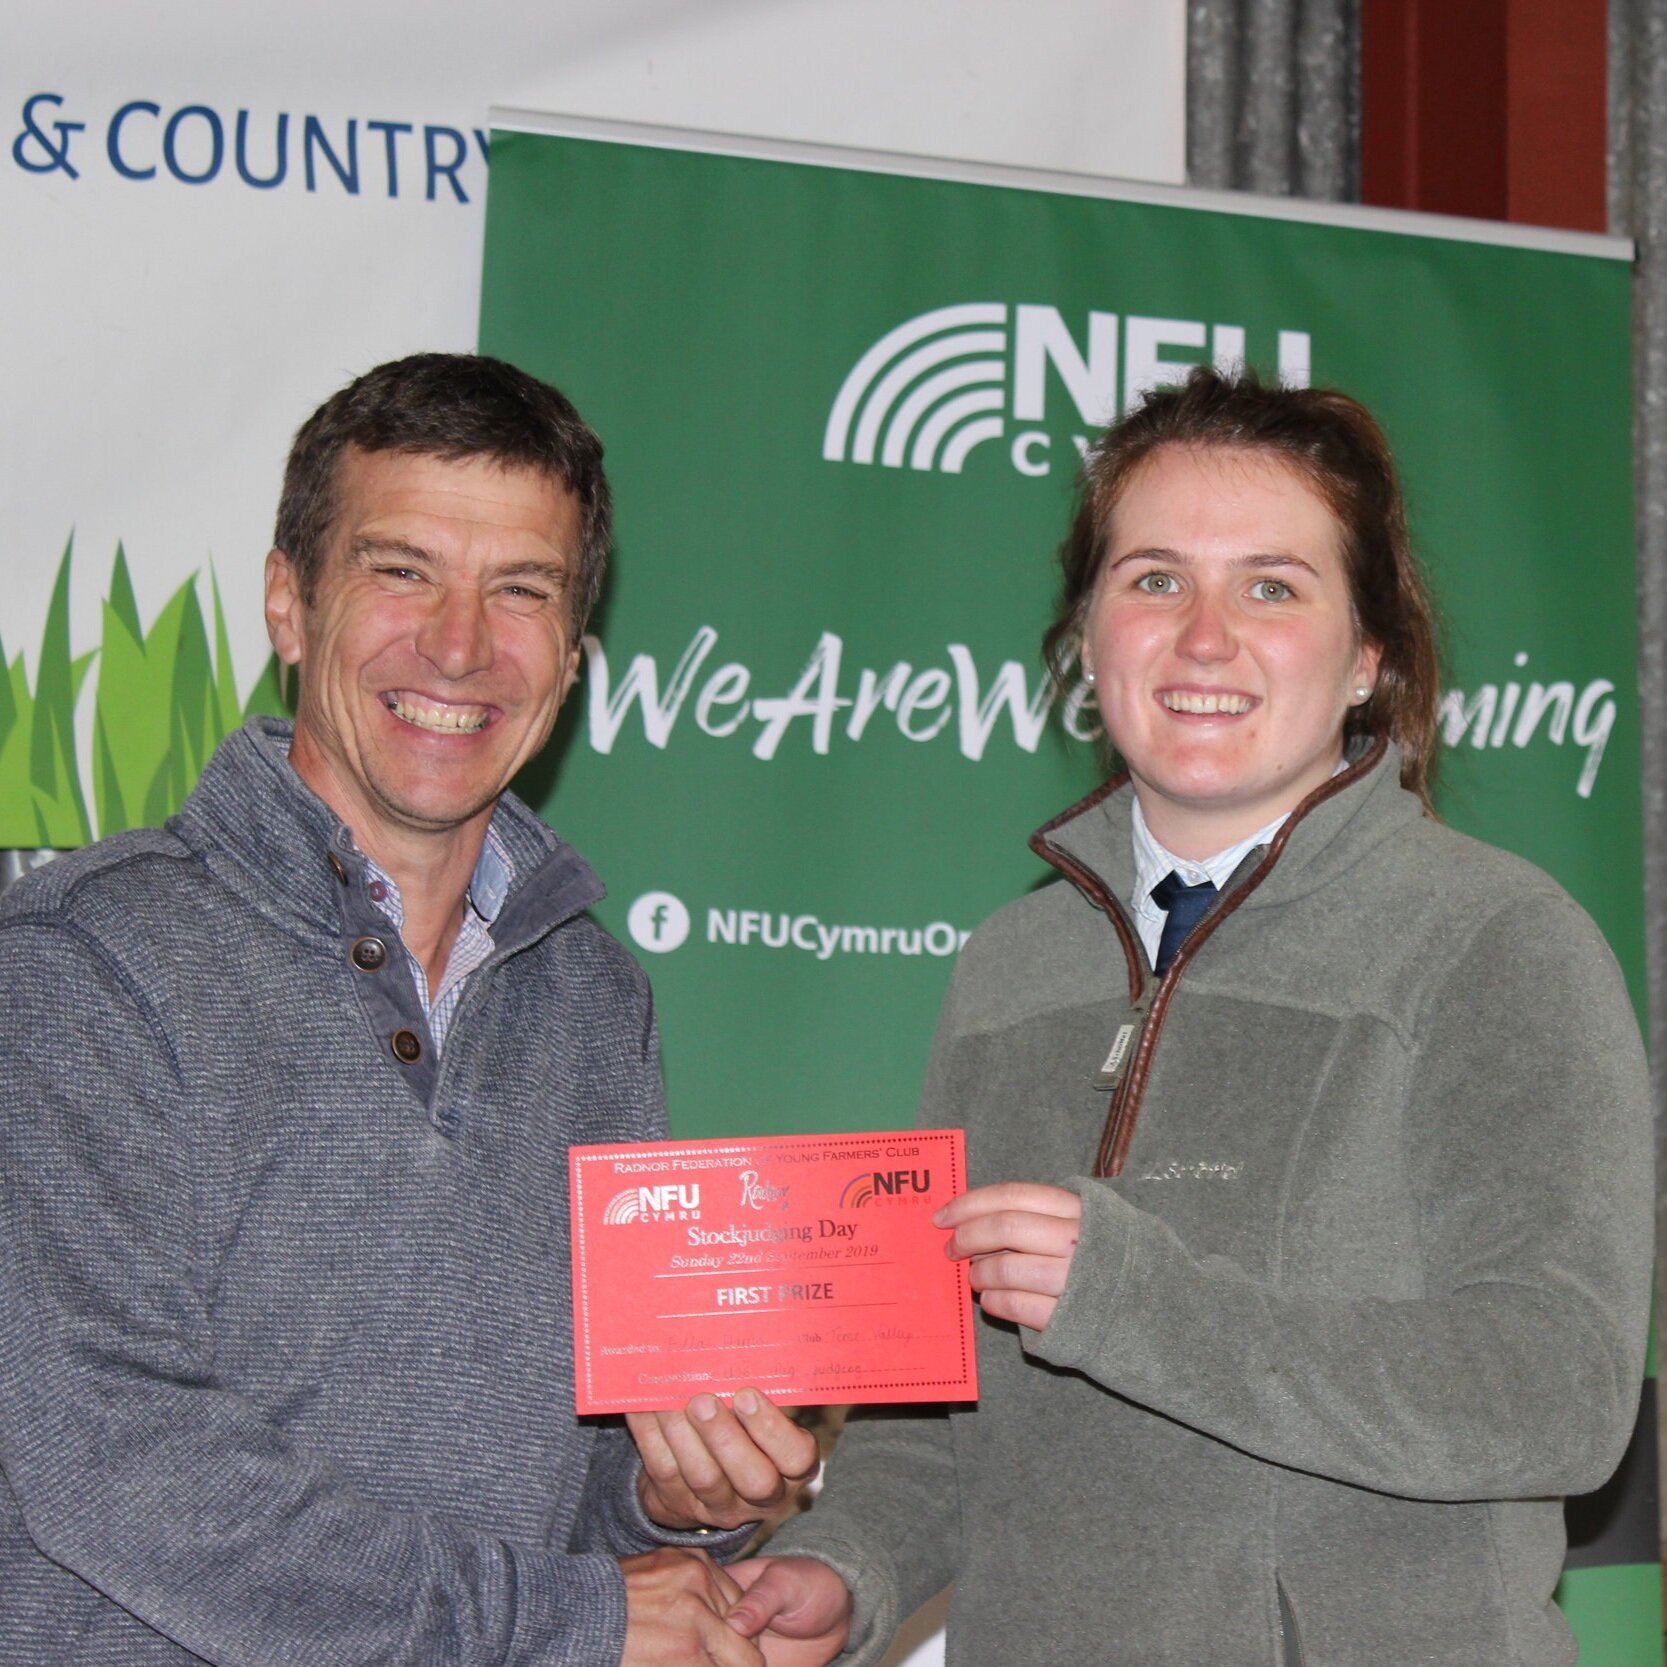 Ella Harris, Teme Valley YFC - joint 1st place in the Senior Pig with Mark Watson.